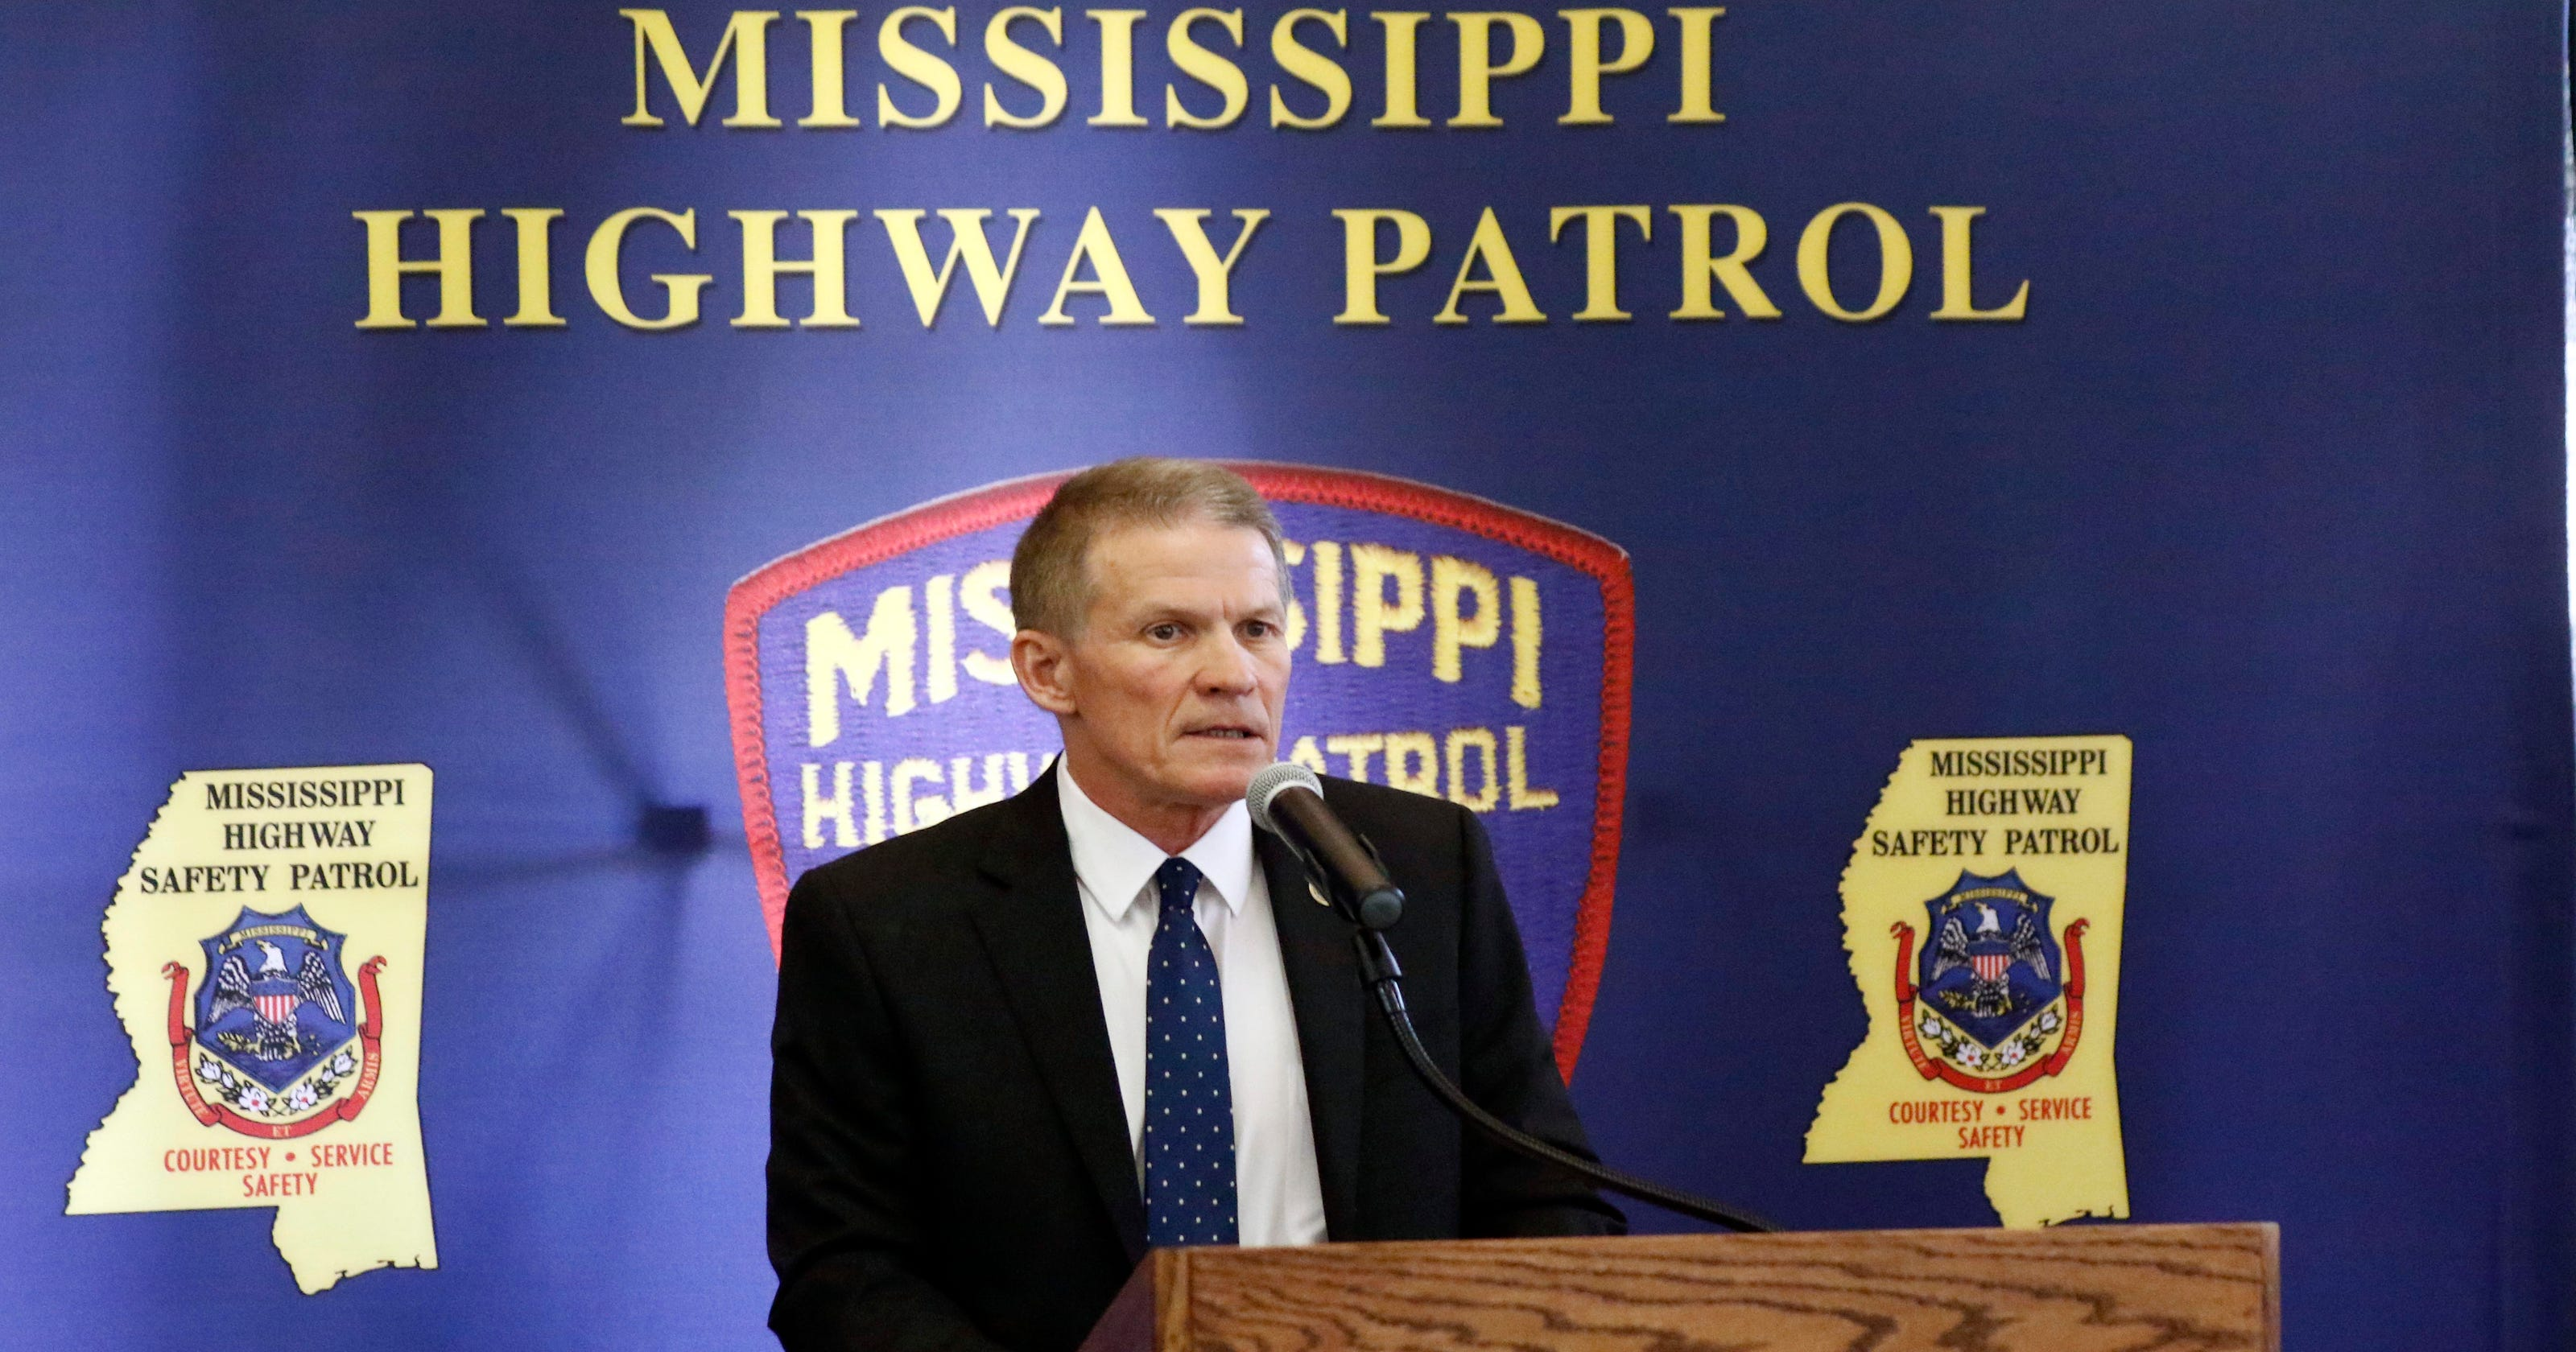 best sneakers 54bc4 4a4c9 State police agency will no longer purchase Nike products, says public  safety commissioner